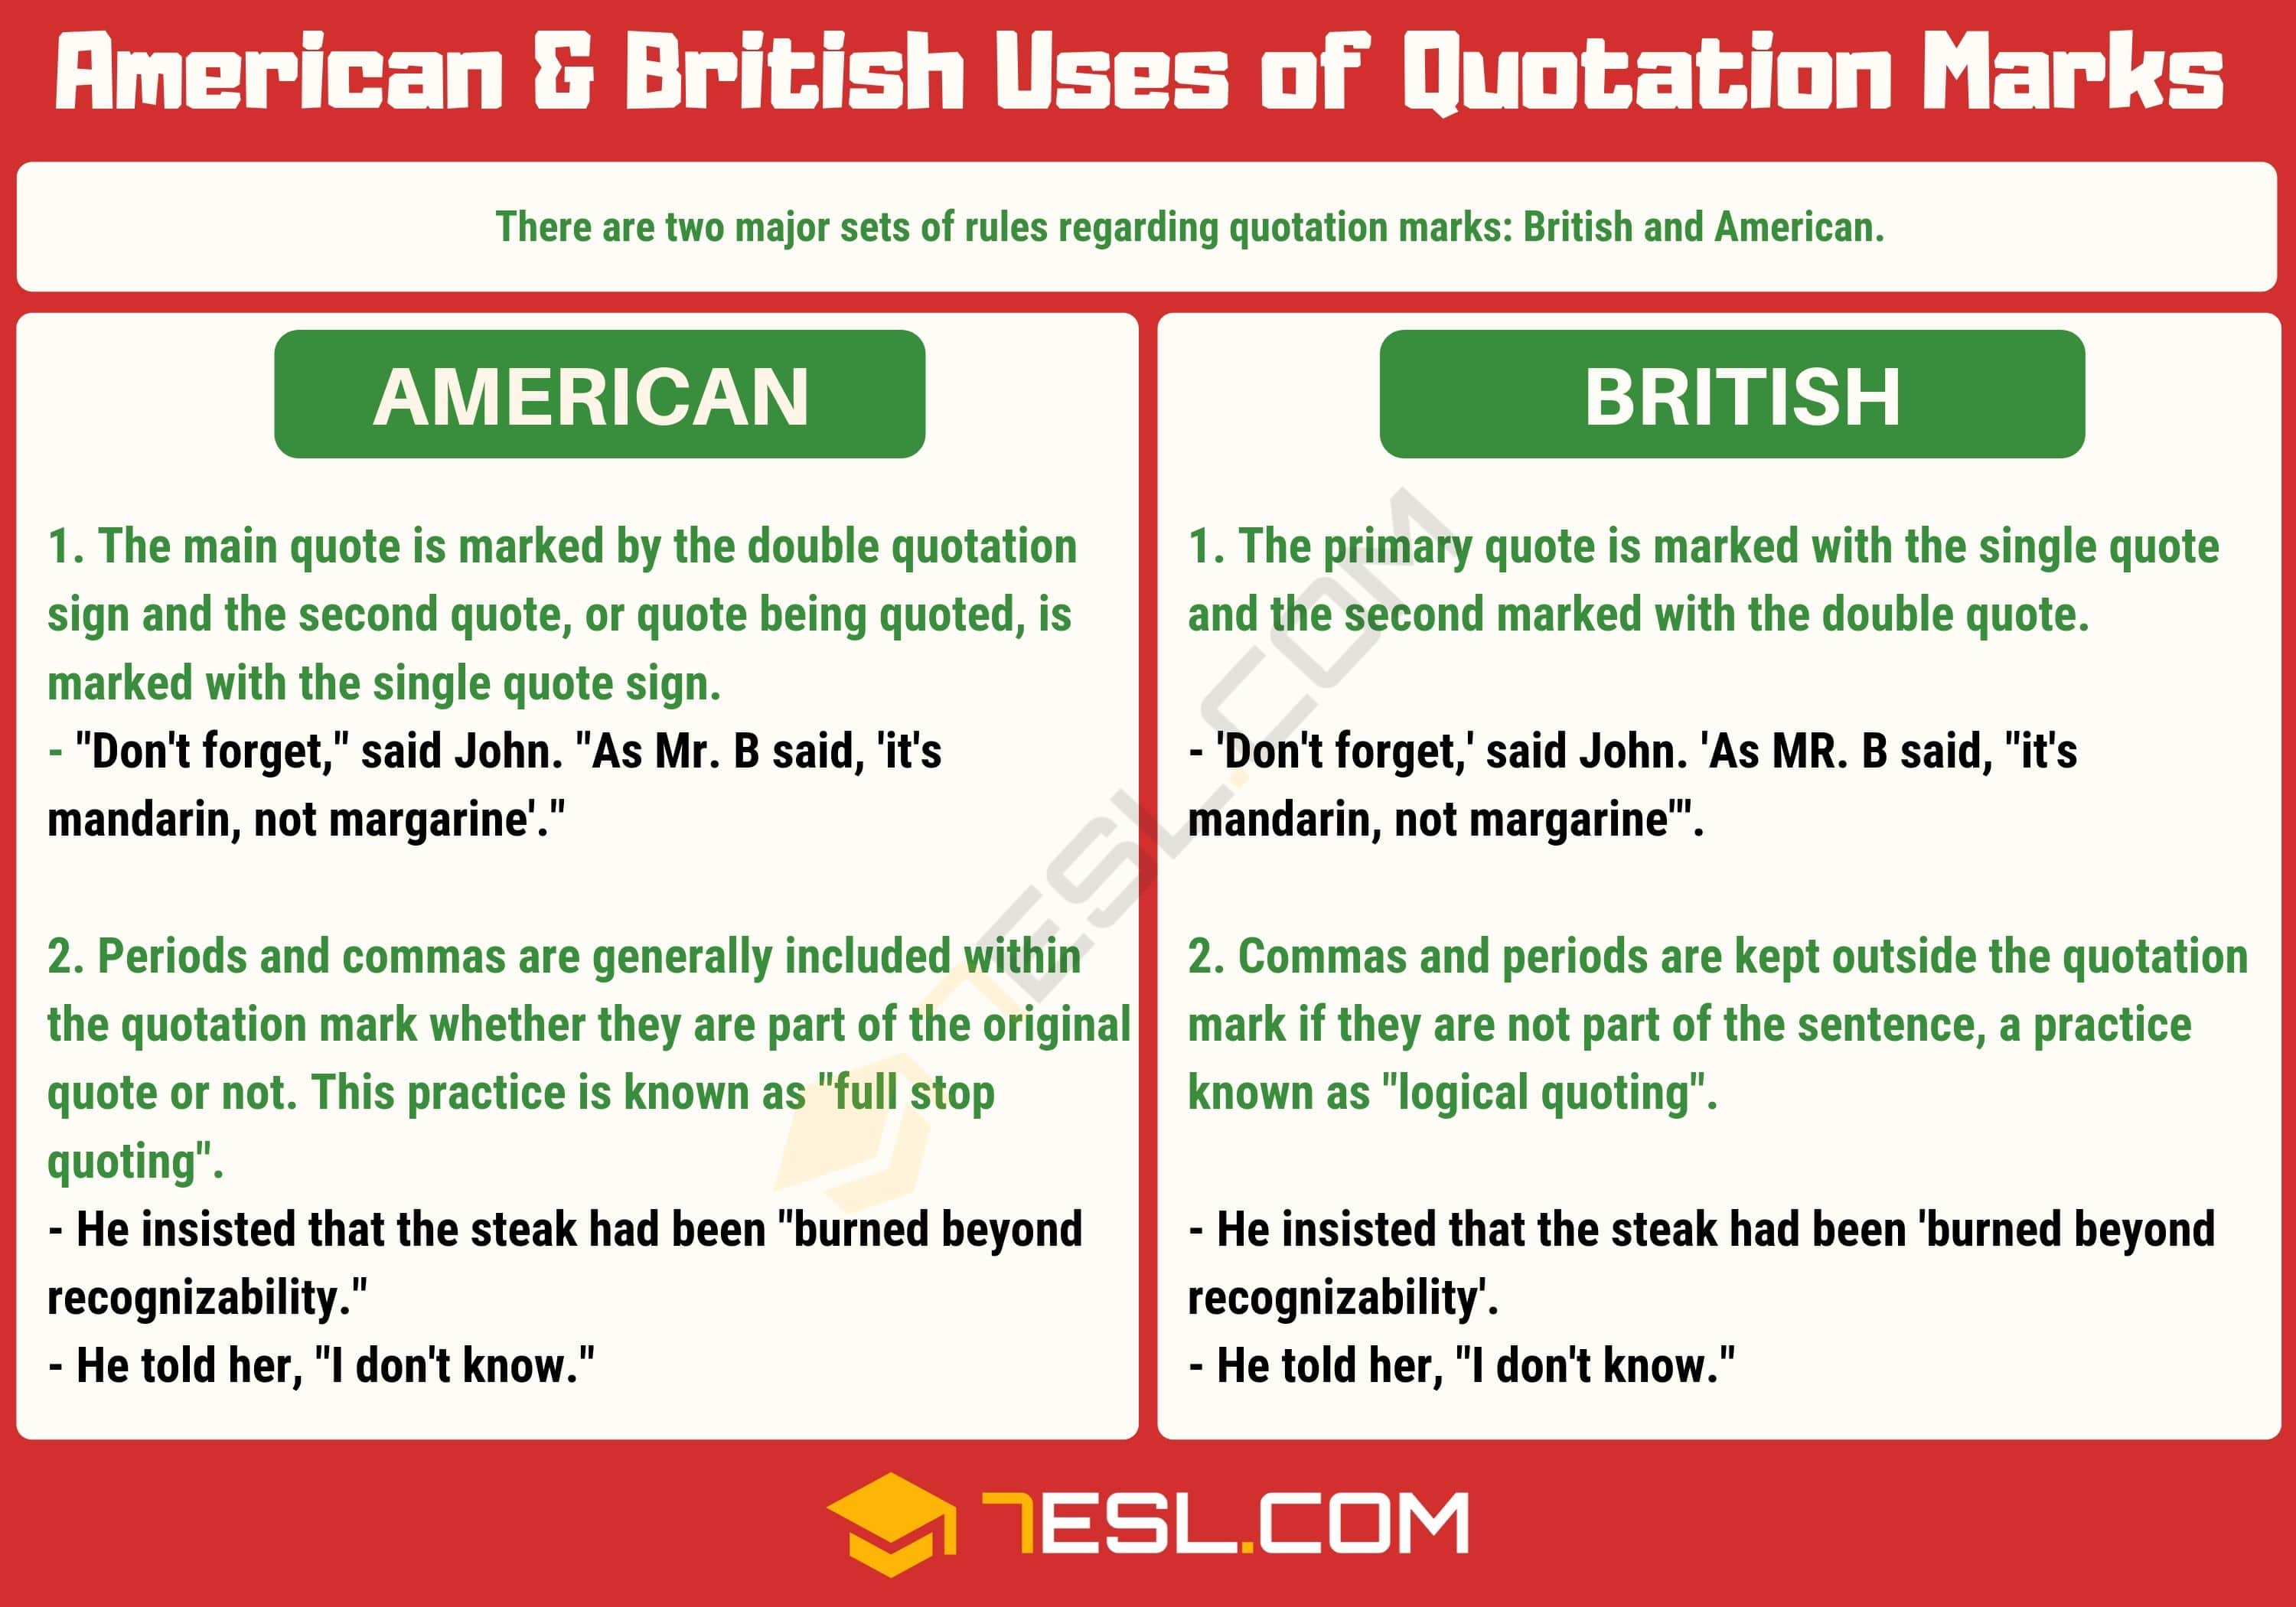 Differences Between American and British Uses of Quotation Marks